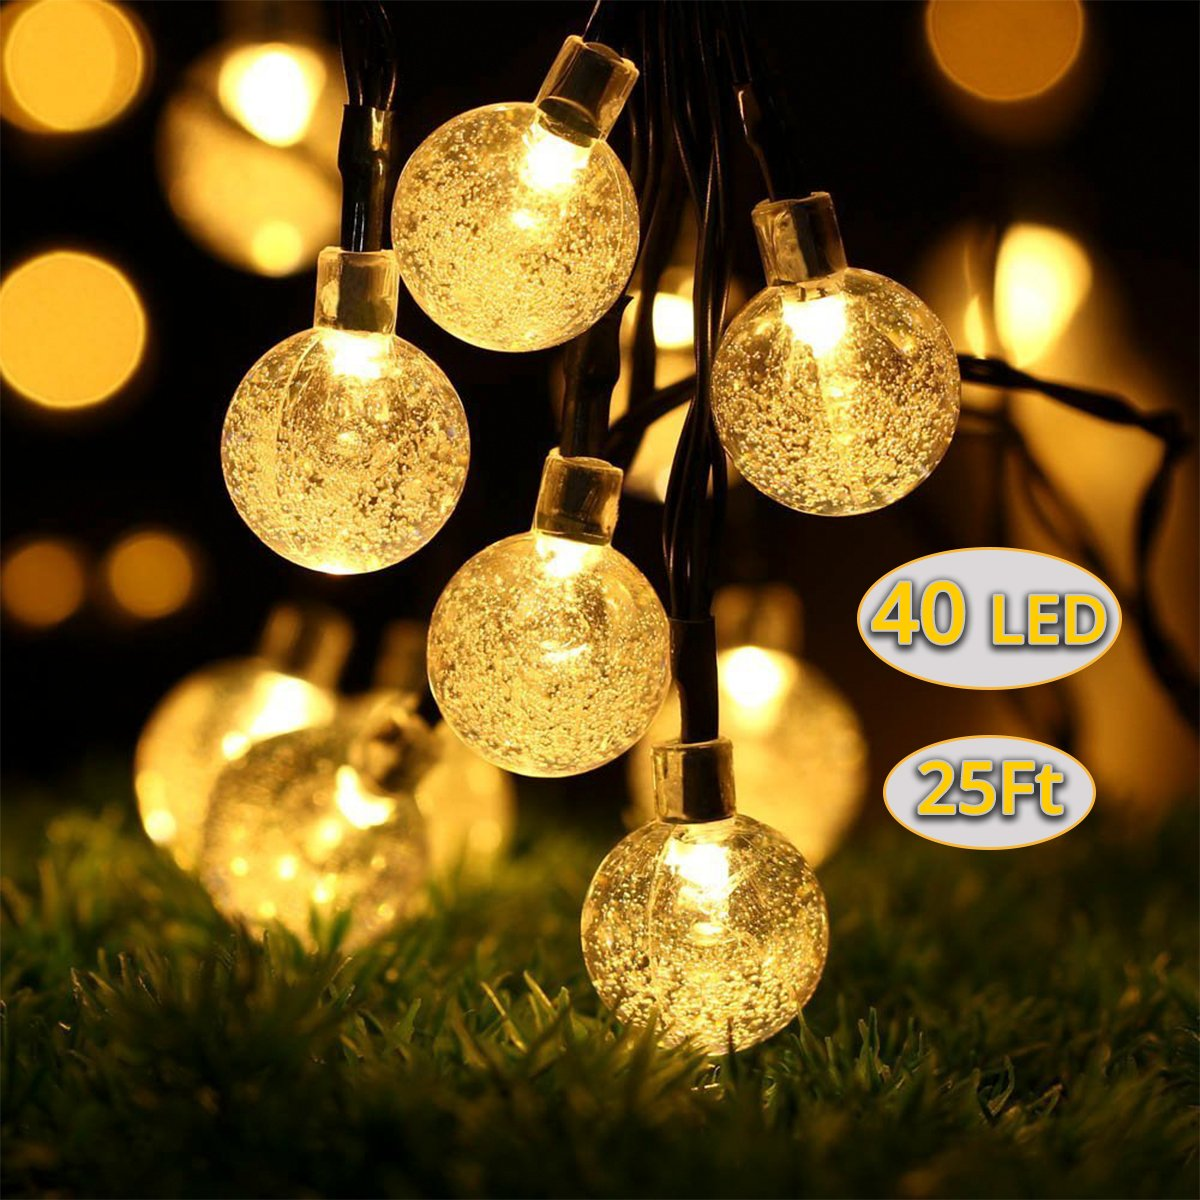 ALOVECO Solar String Lights Outdoor, 25Ft 40 LED String Lights Crystal Ball Decorative Lights Waterproof Indoor/Outdoor Fairy Lights for Garden, Home, Christmas, Parties (Warm White)